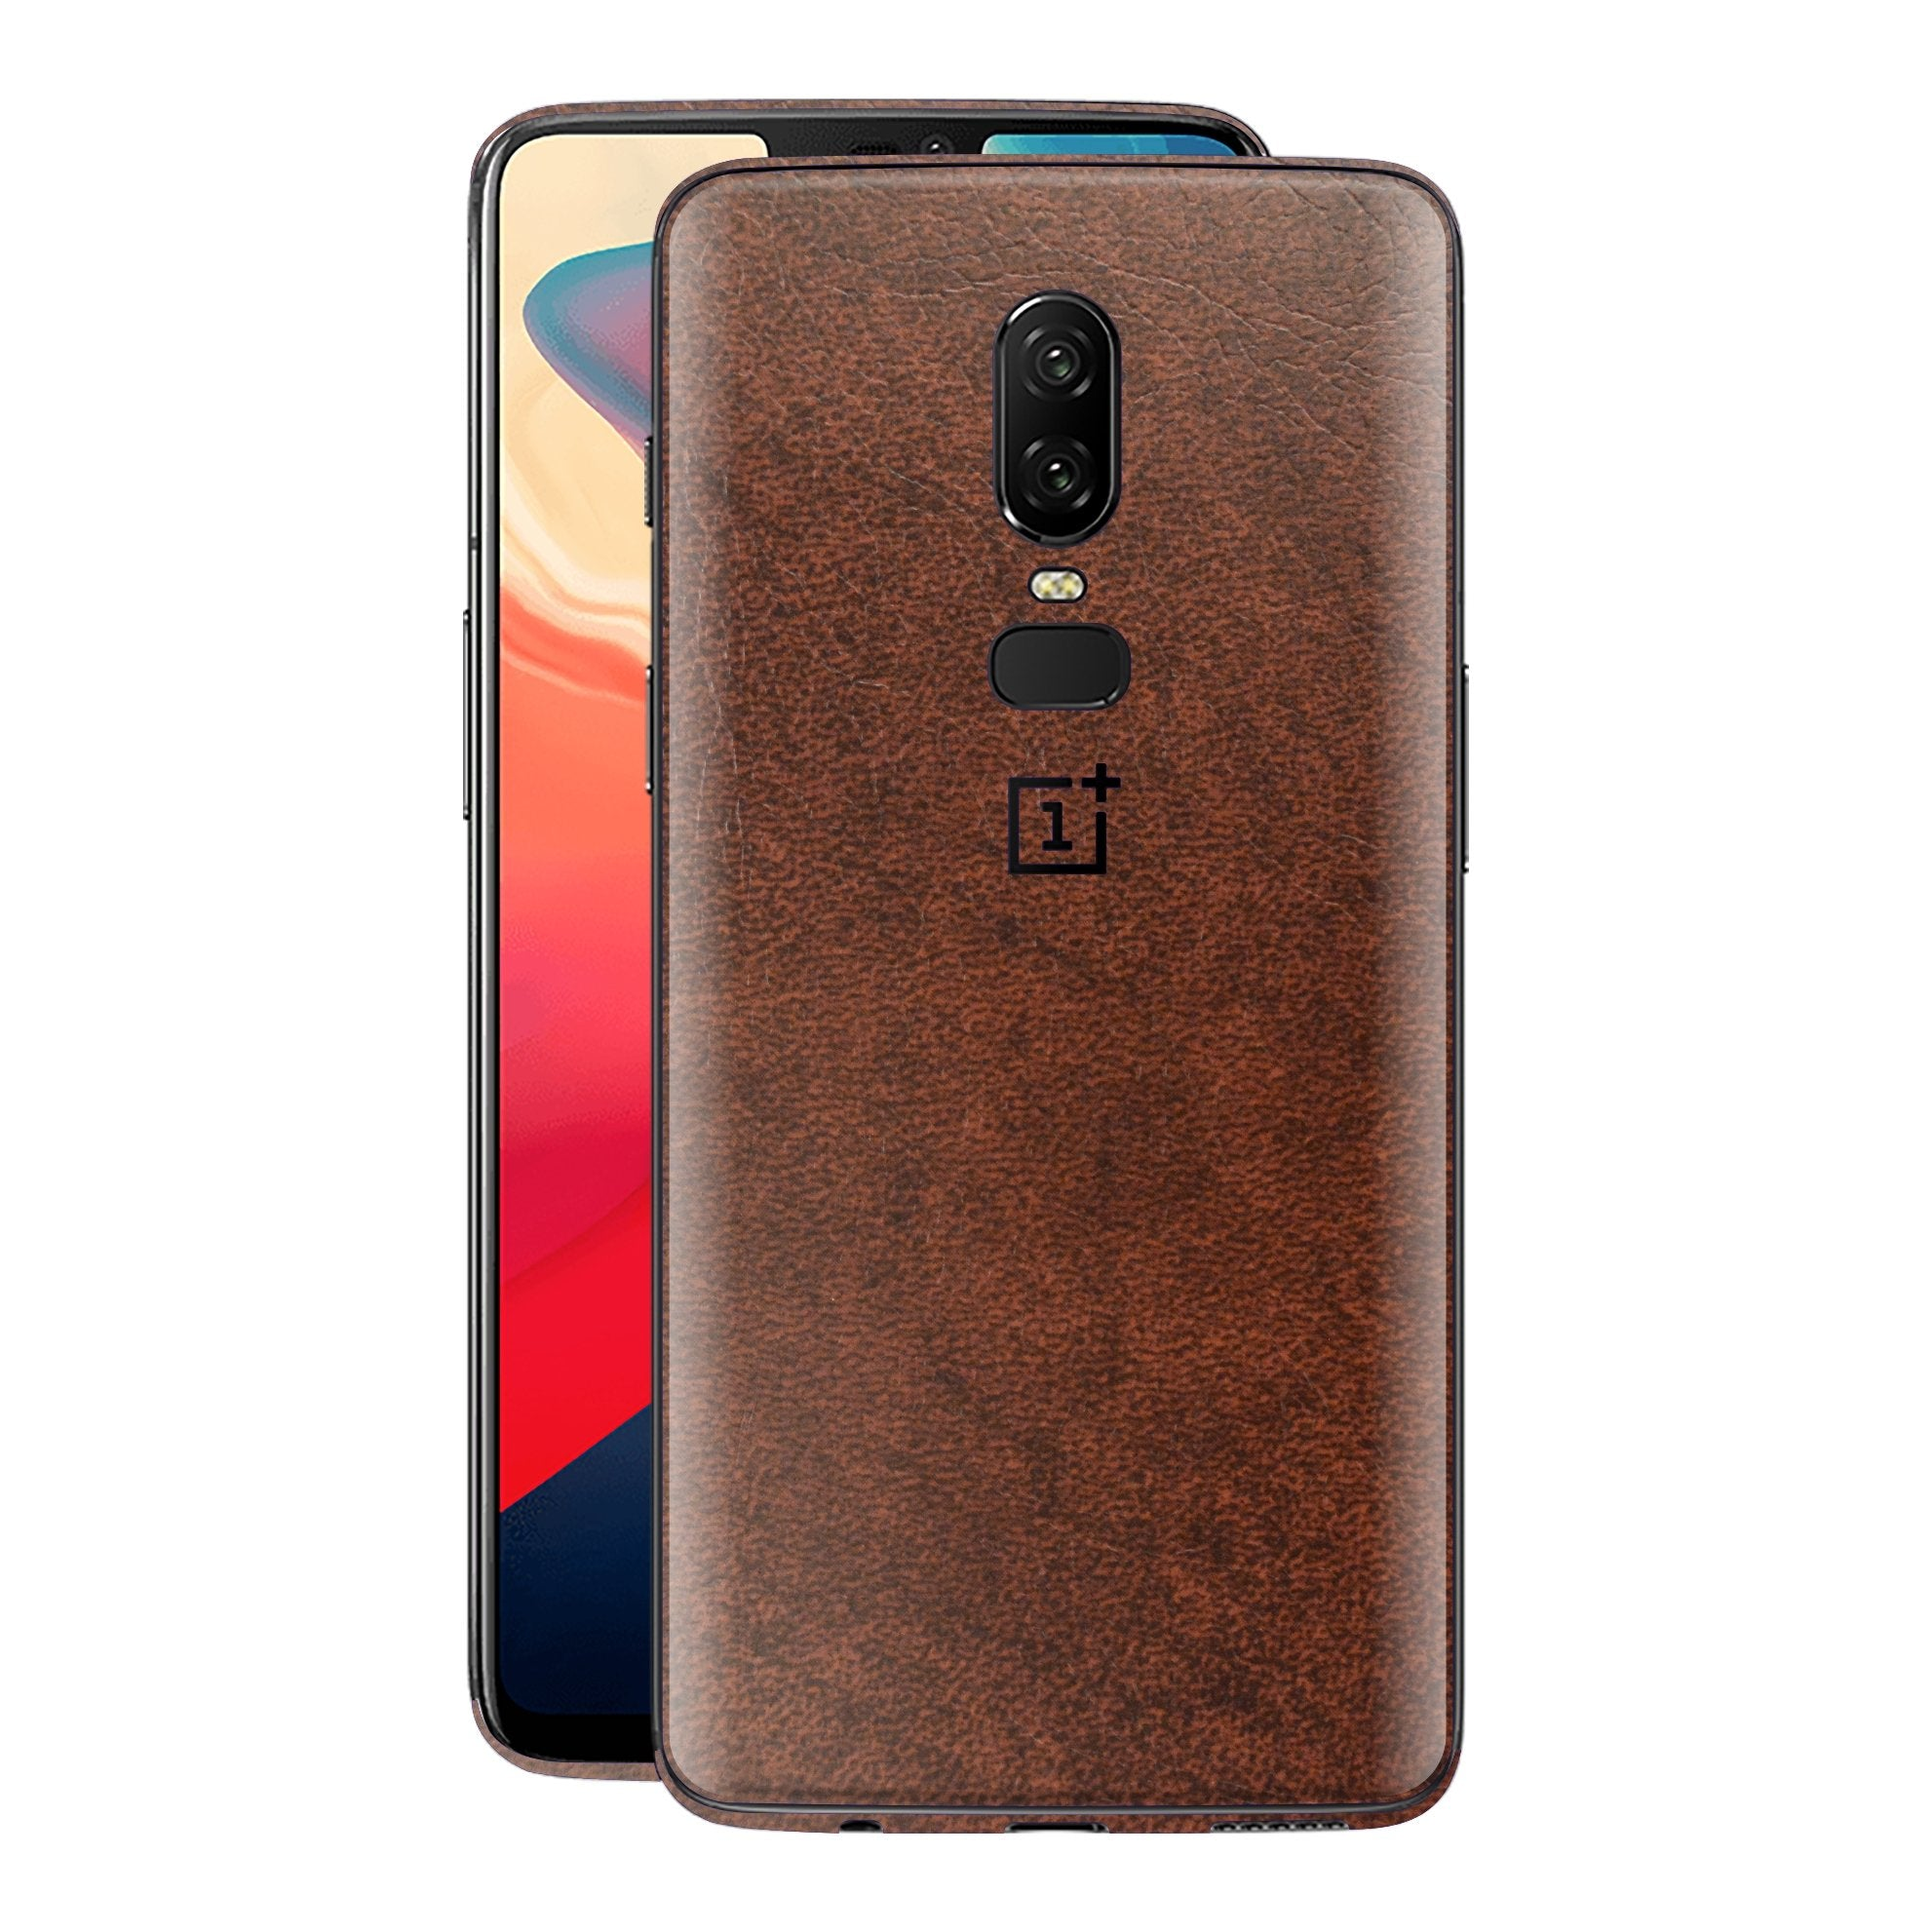 OnePlus 6 Luxuria BROWN Leather Skin Wrap Decal Protector | EasySkin